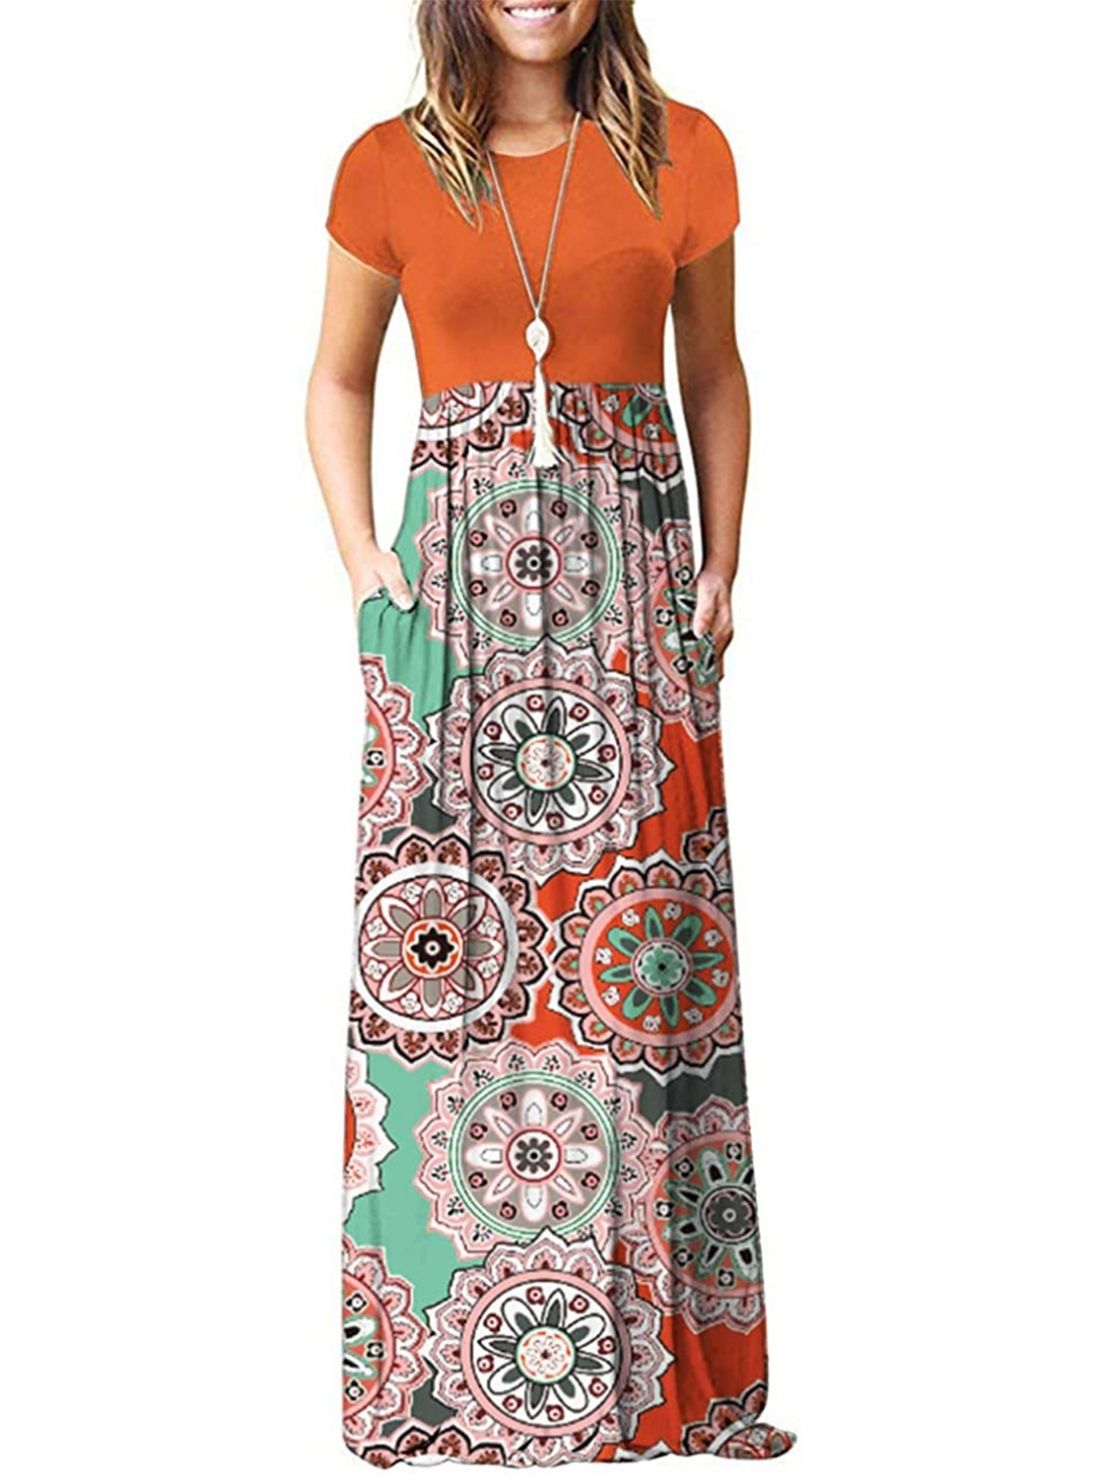 Wholesale Printed Casual Dresses